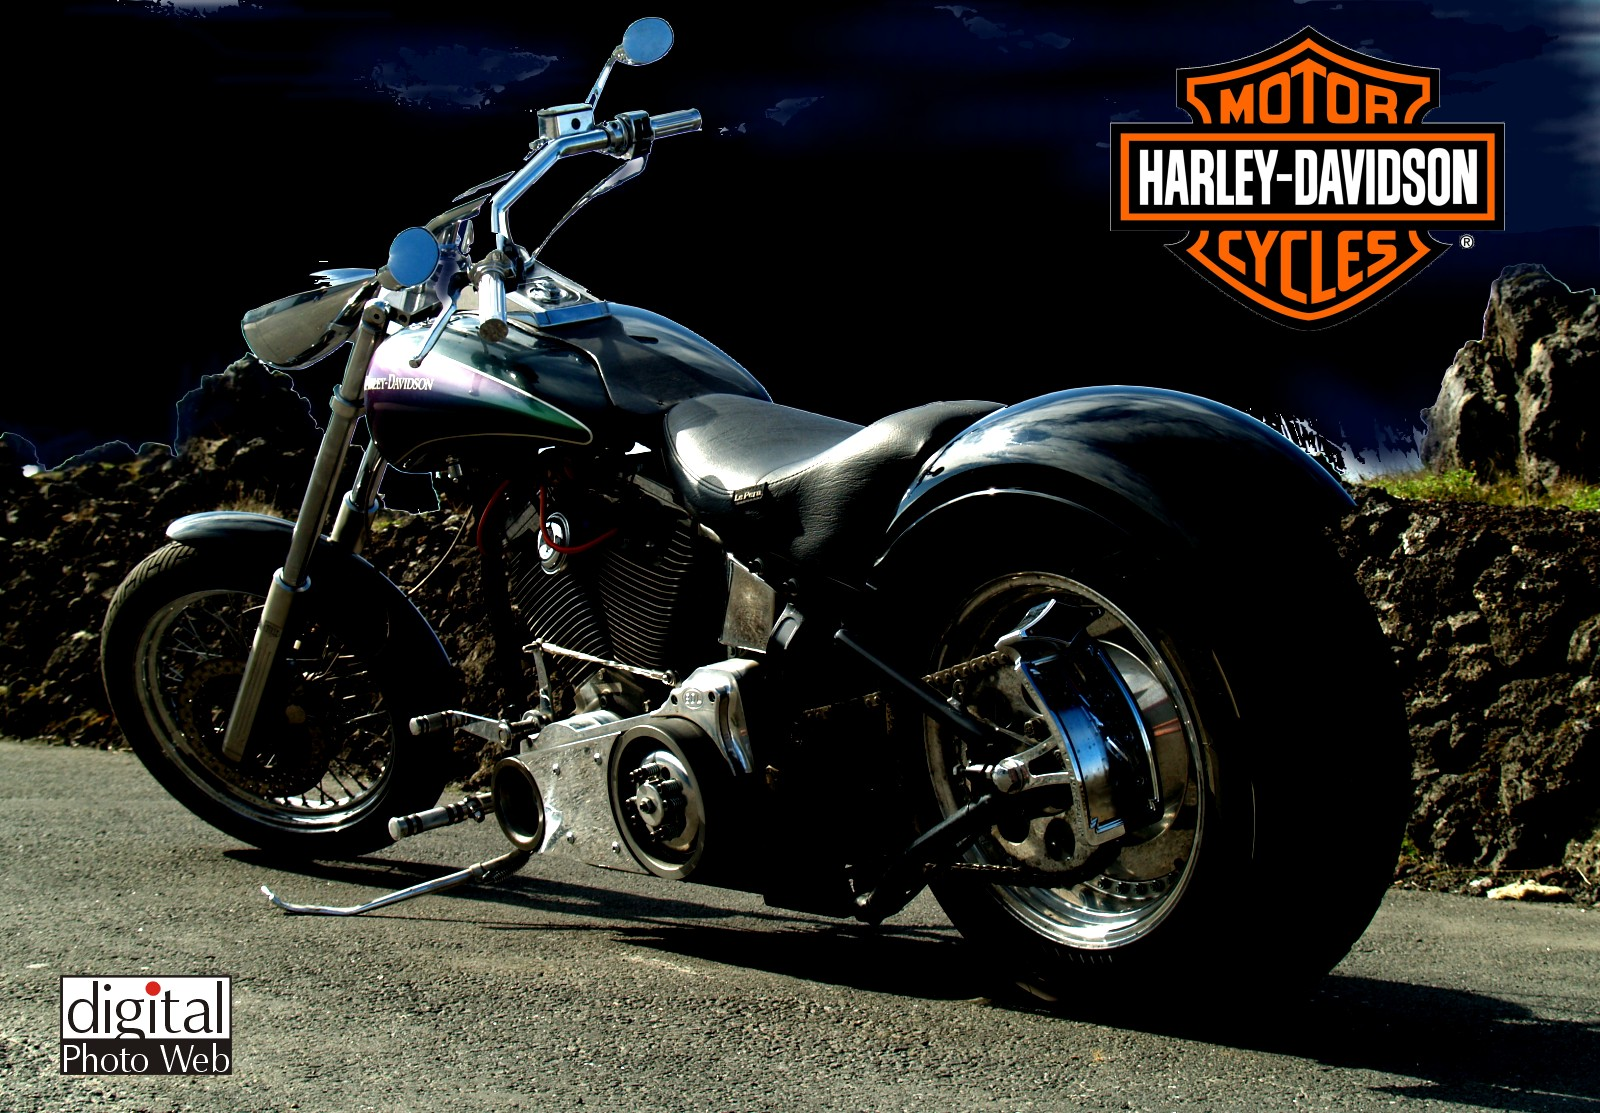 Harley Davidson Motorcycle 06 Wallpapers Apps Directories 1600x1113